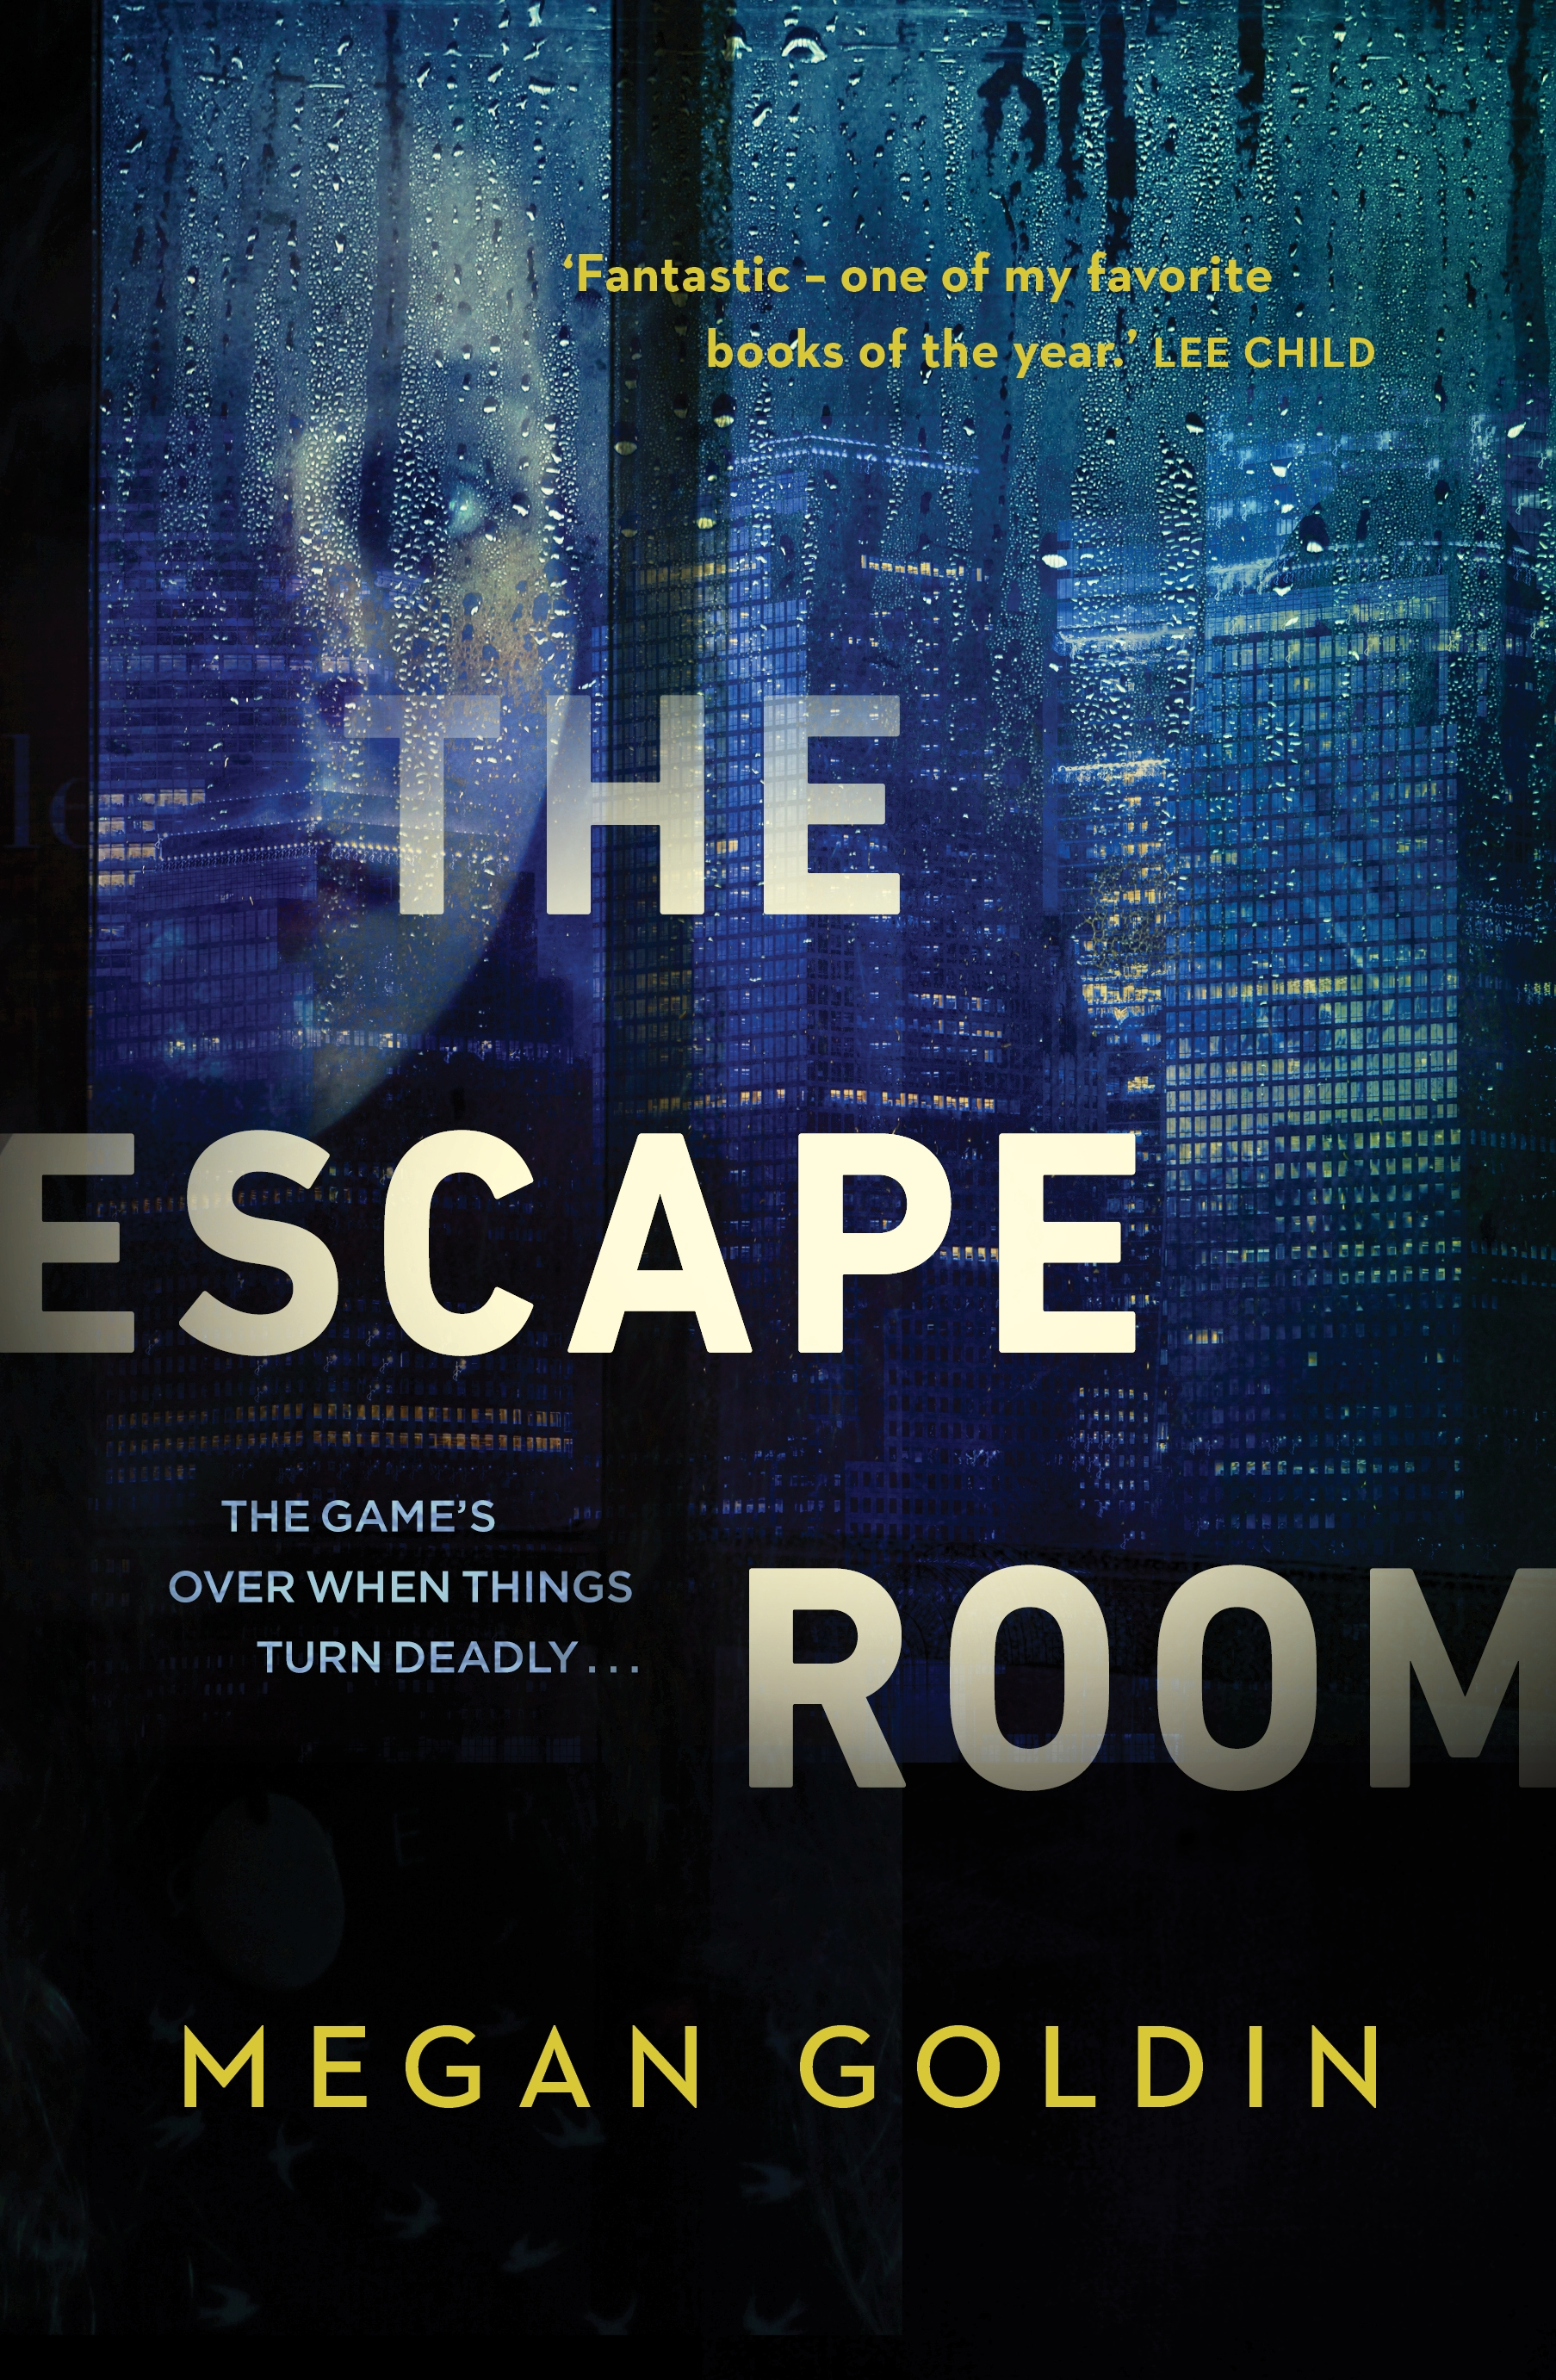 Escape Room The